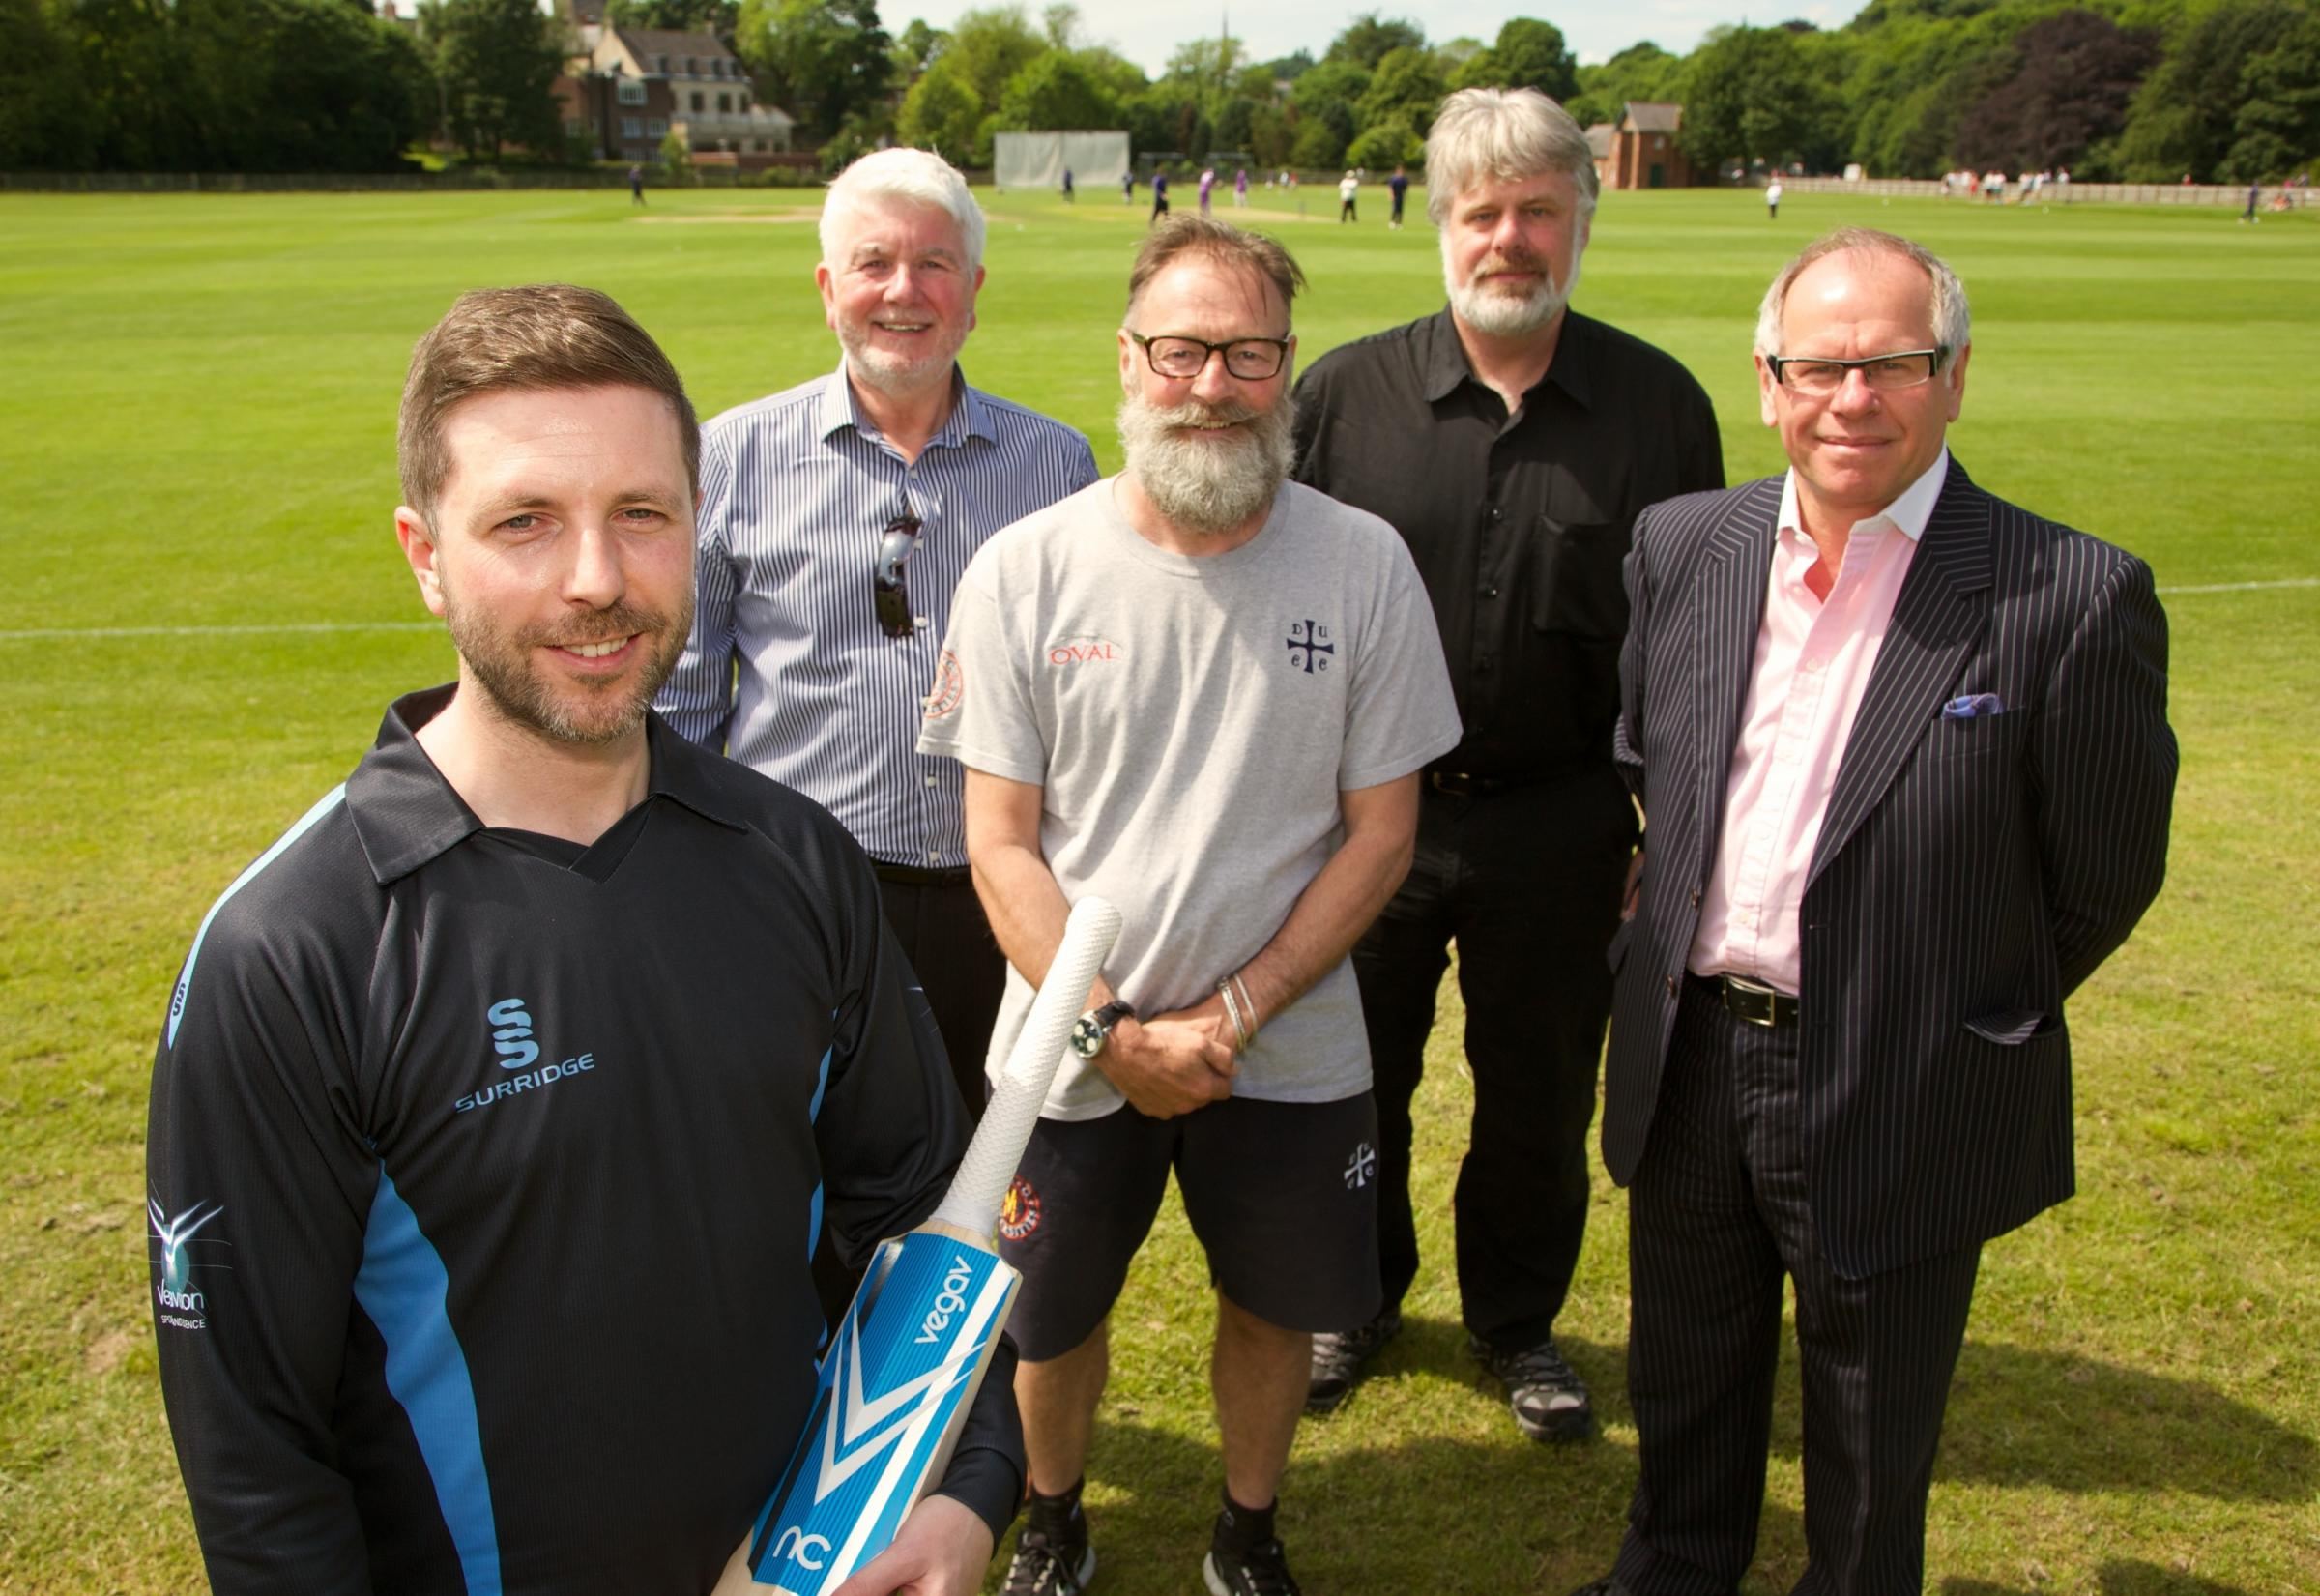 BOWLED OVER: Pictured from left to right are Mel O'Connor, Vega V's Ray Rutter, Graeme Fowler, Professor Andrew Stockman and Norman Peterson